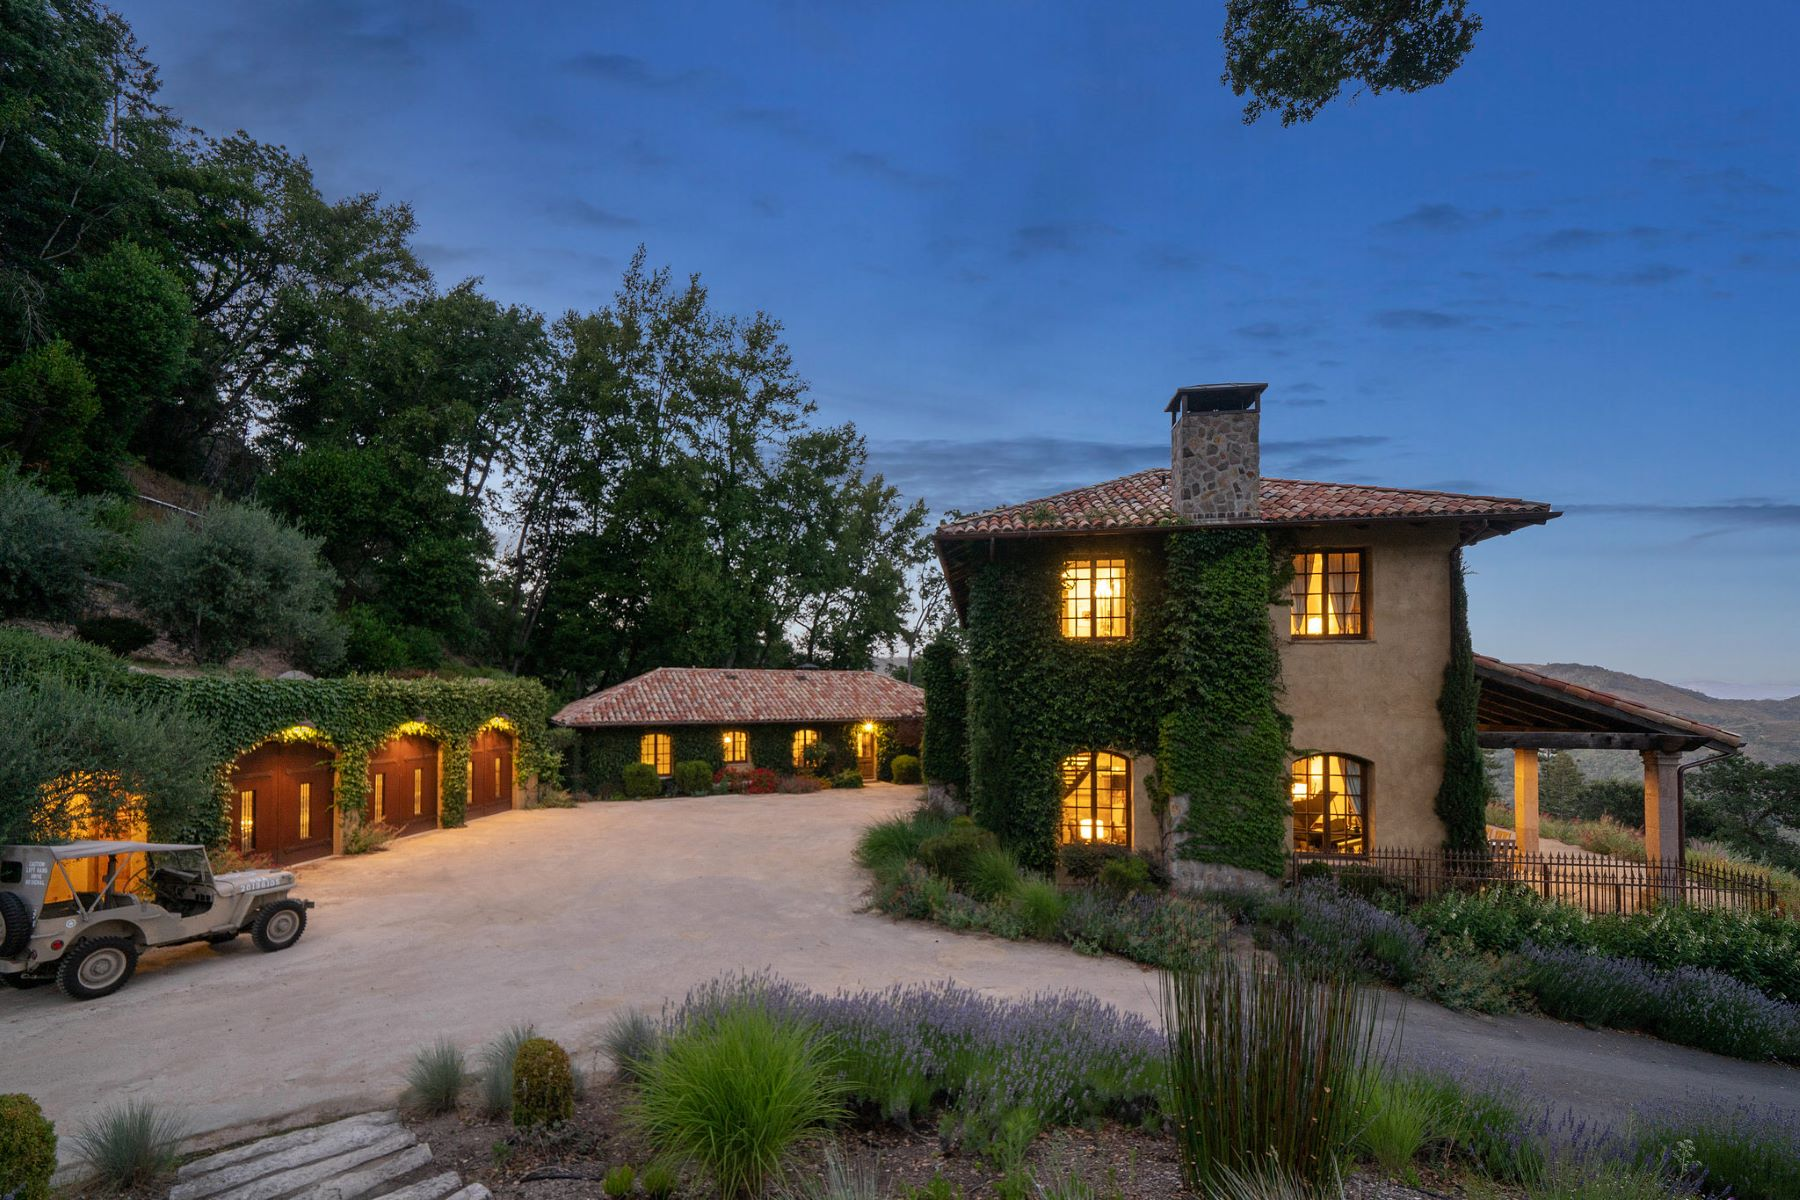 Single Family Homes for Active at Beautifully Crafted Estate In Napa 651 Wall Rd Napa, California 94558 United States